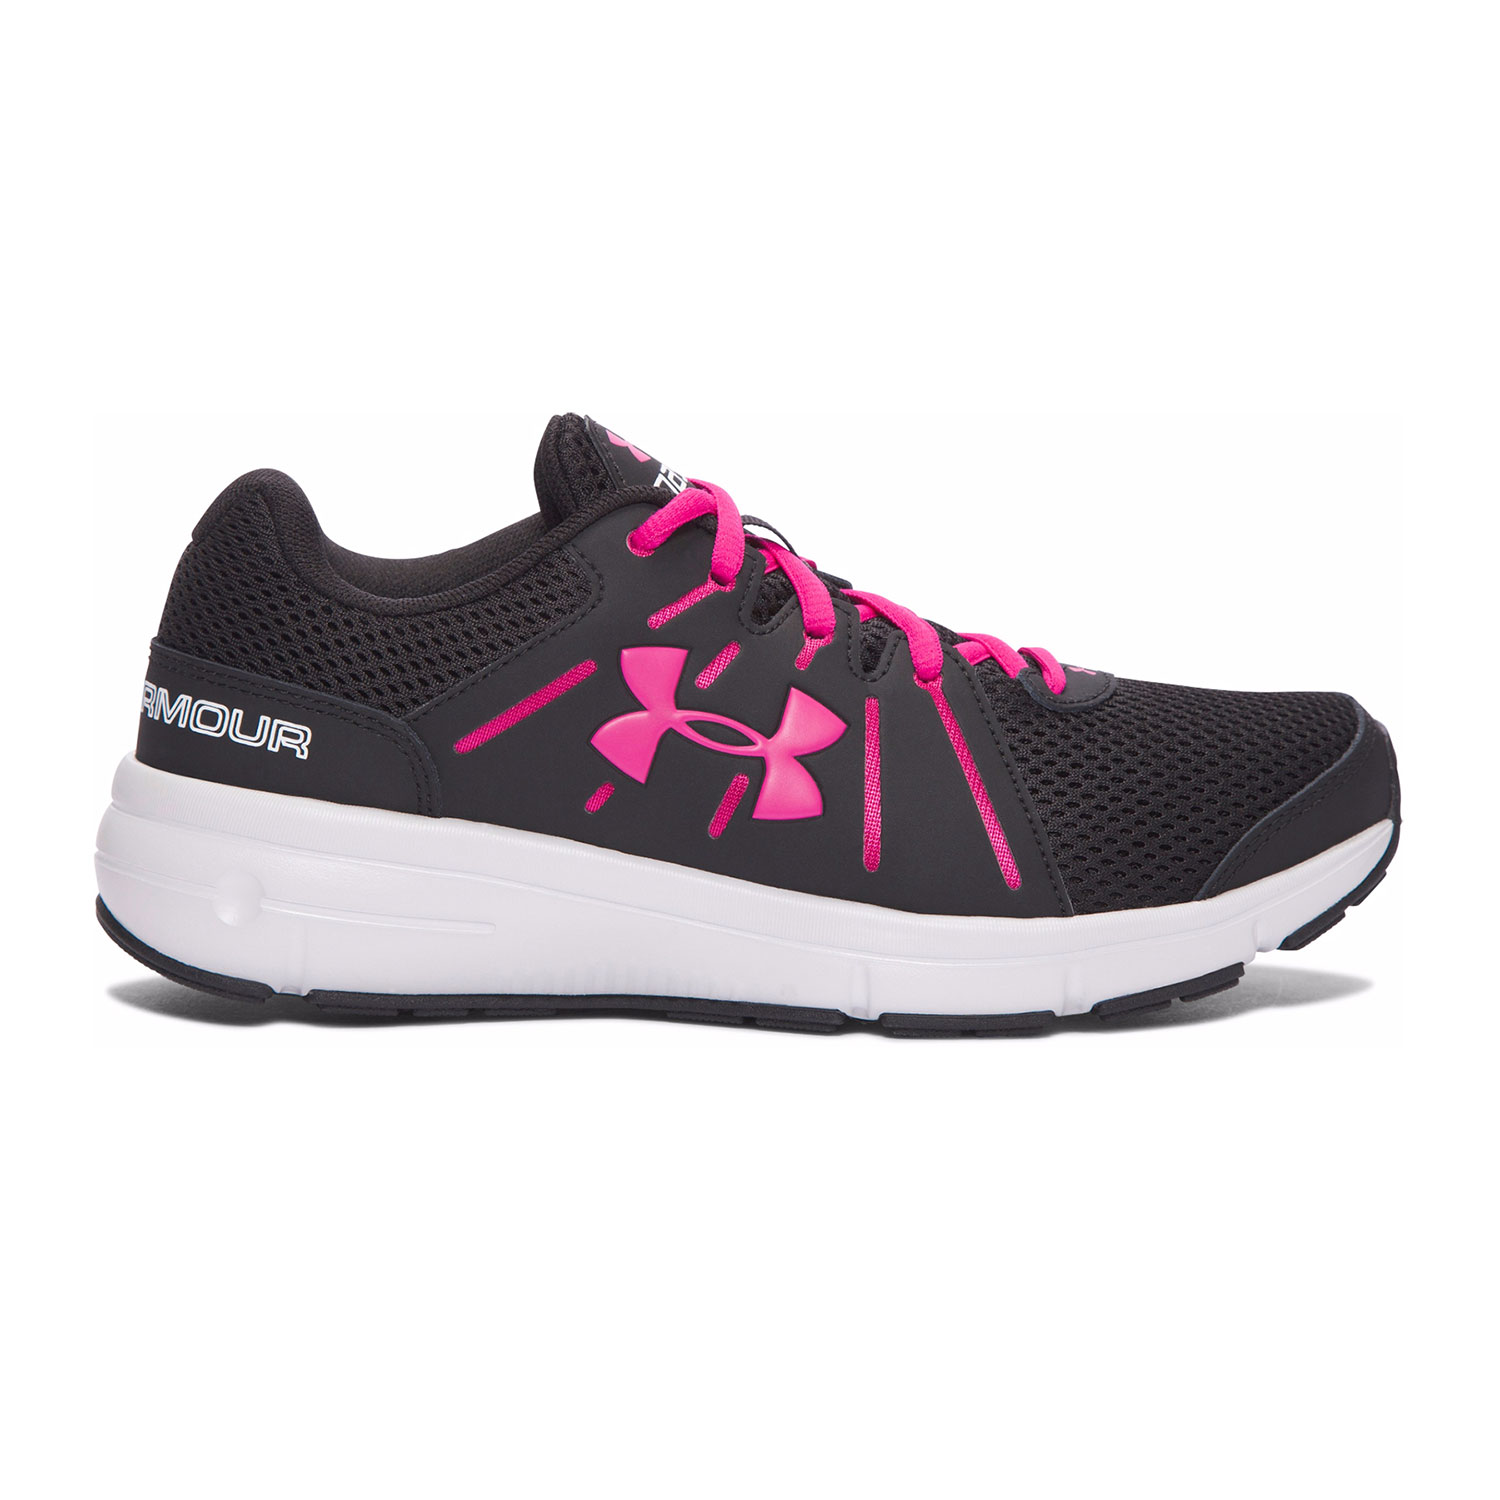 meet 8b14a 6f23a Under Armour Women's Dash RN 2 Running Shoe.